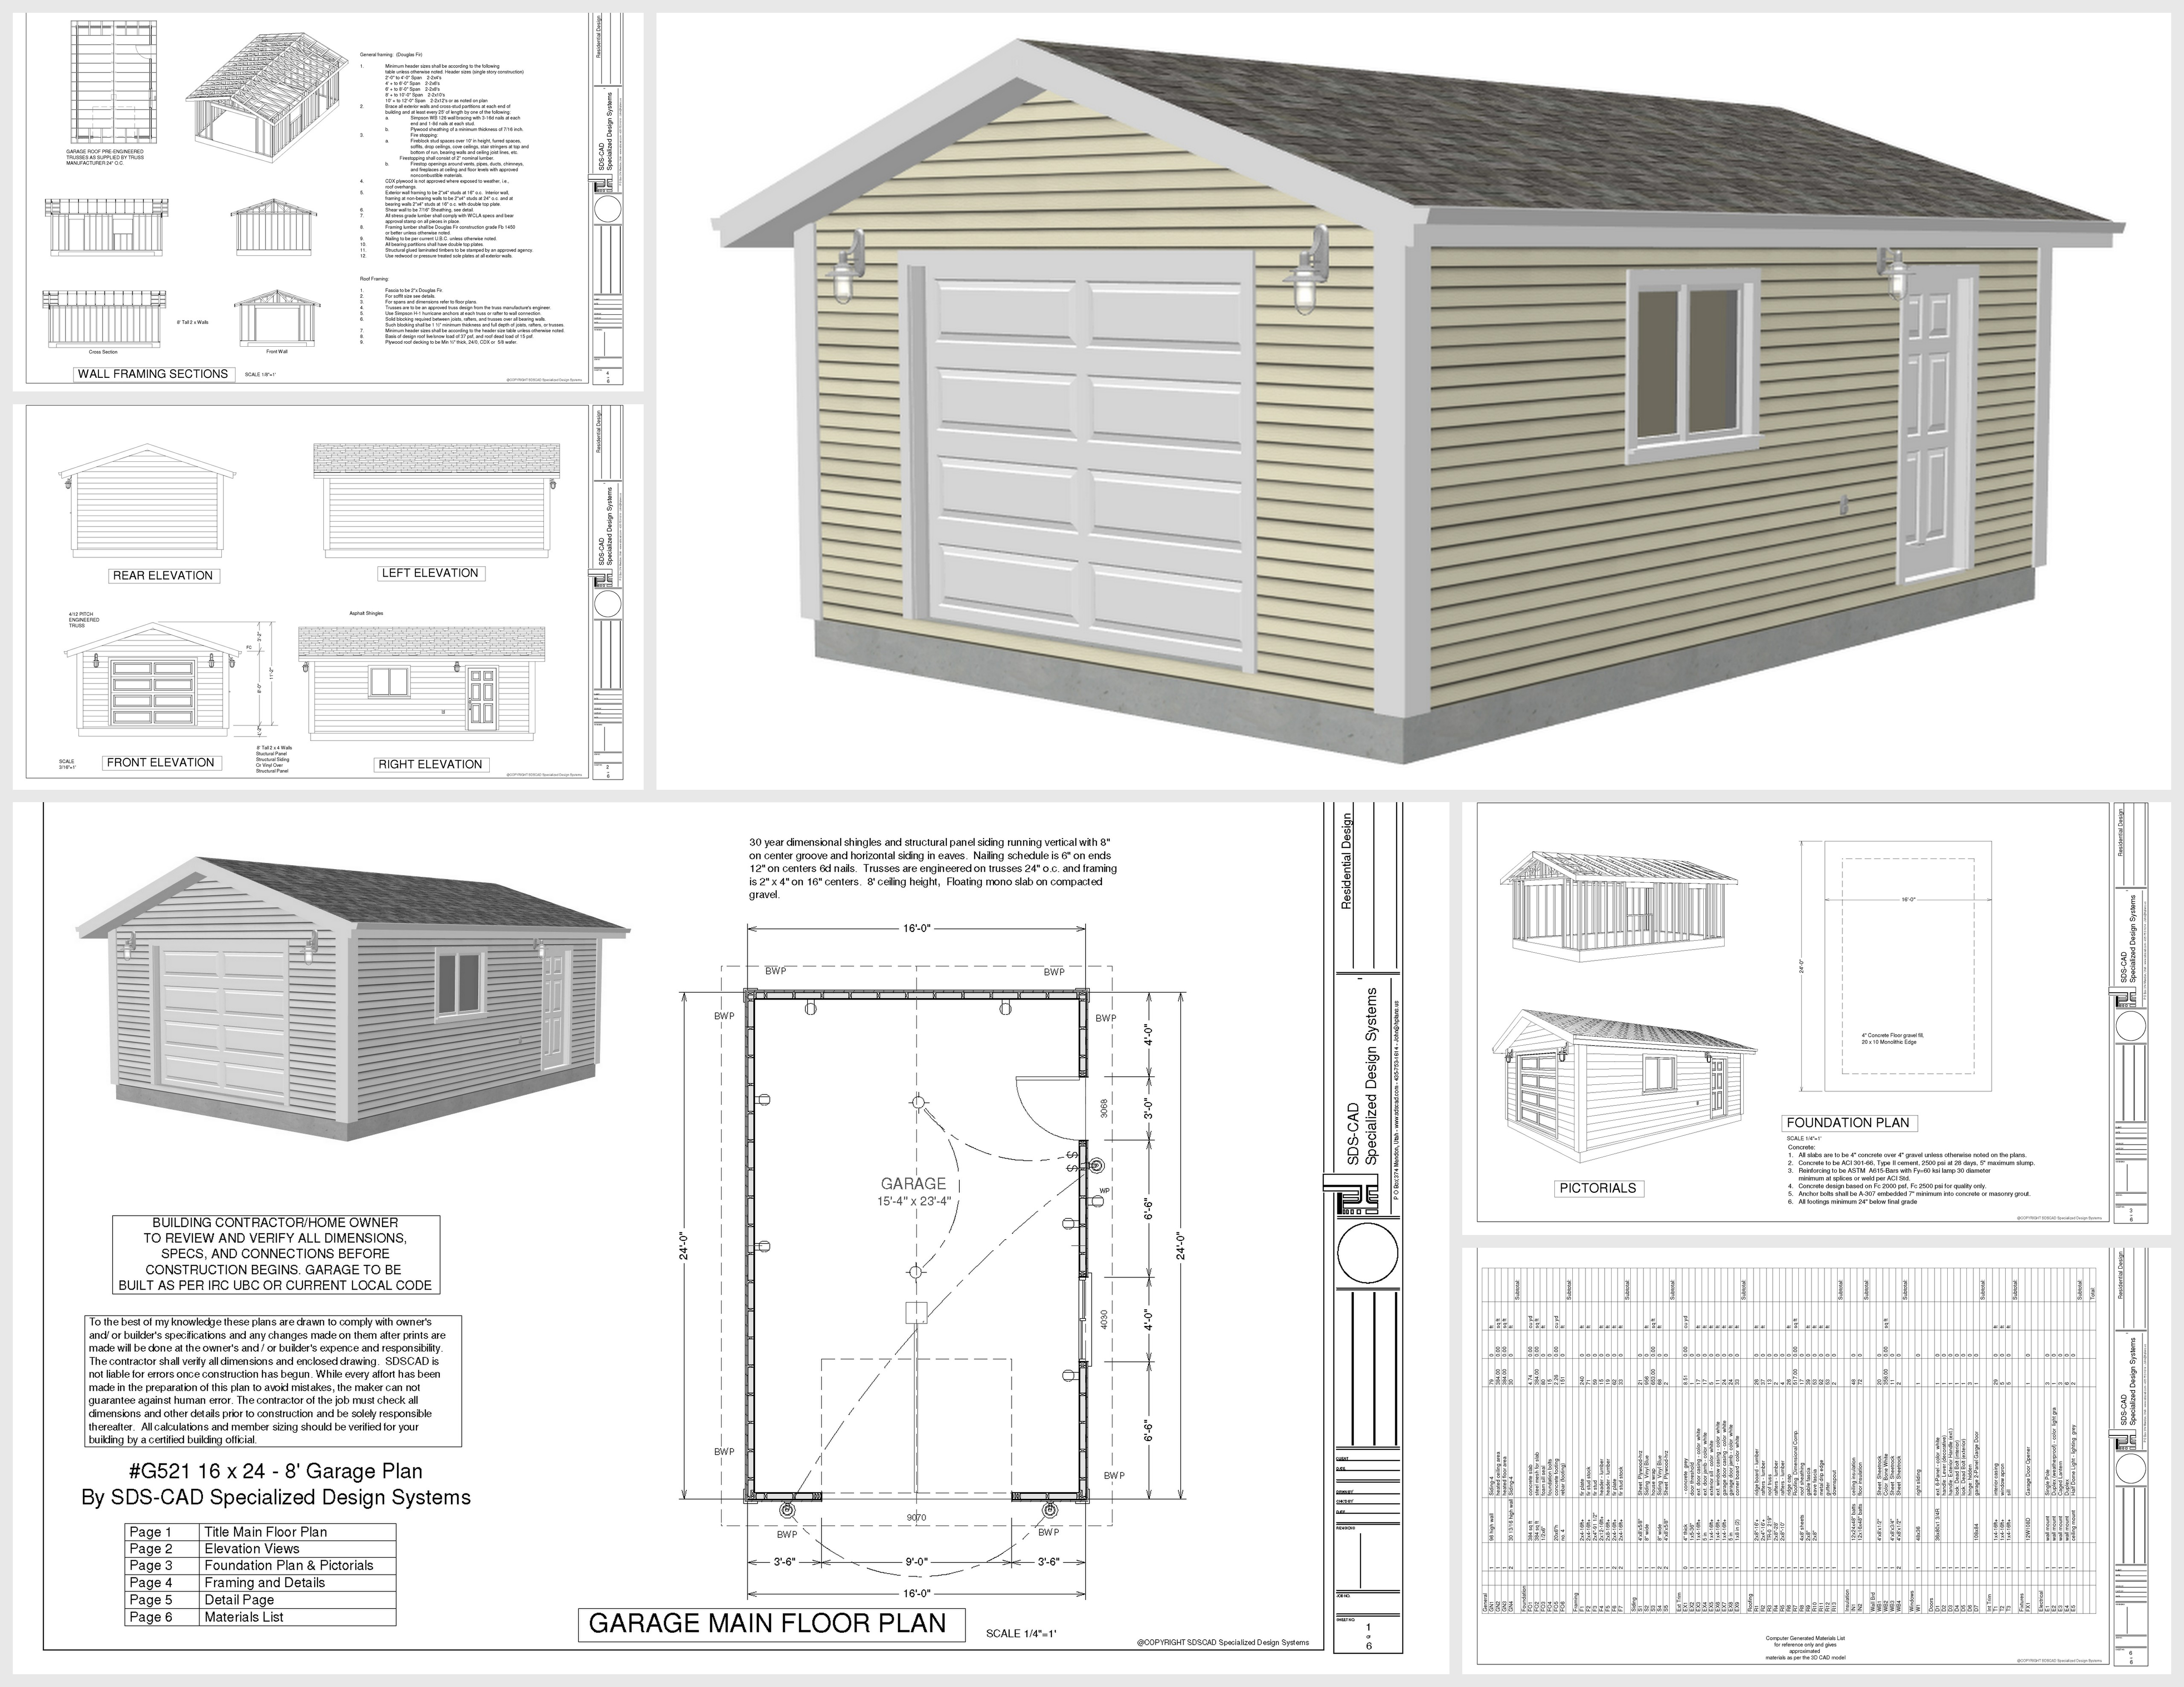 free garage plans g521 16 x 24 x 8 garage plans pdf and dwg